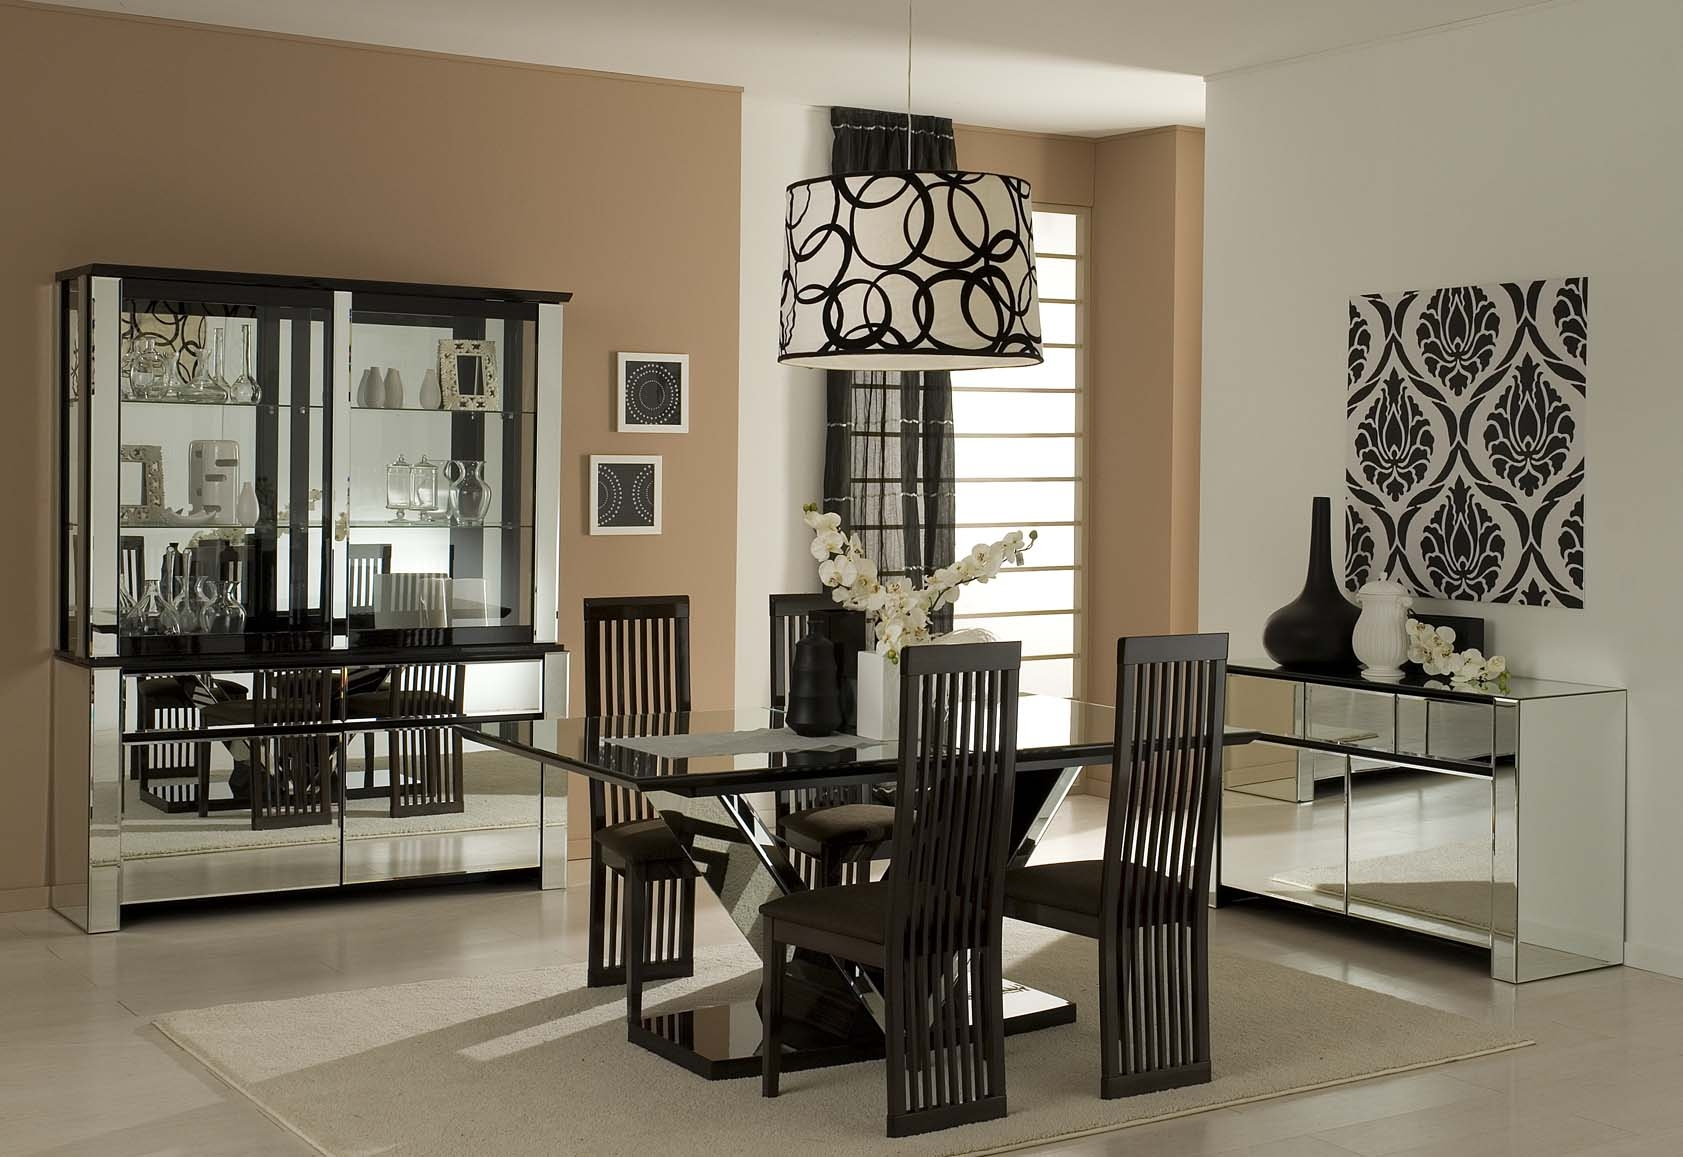 10 Ideas On How To Make Your Dining Room Designs Look Amazing2 Dining Room  Designs 10